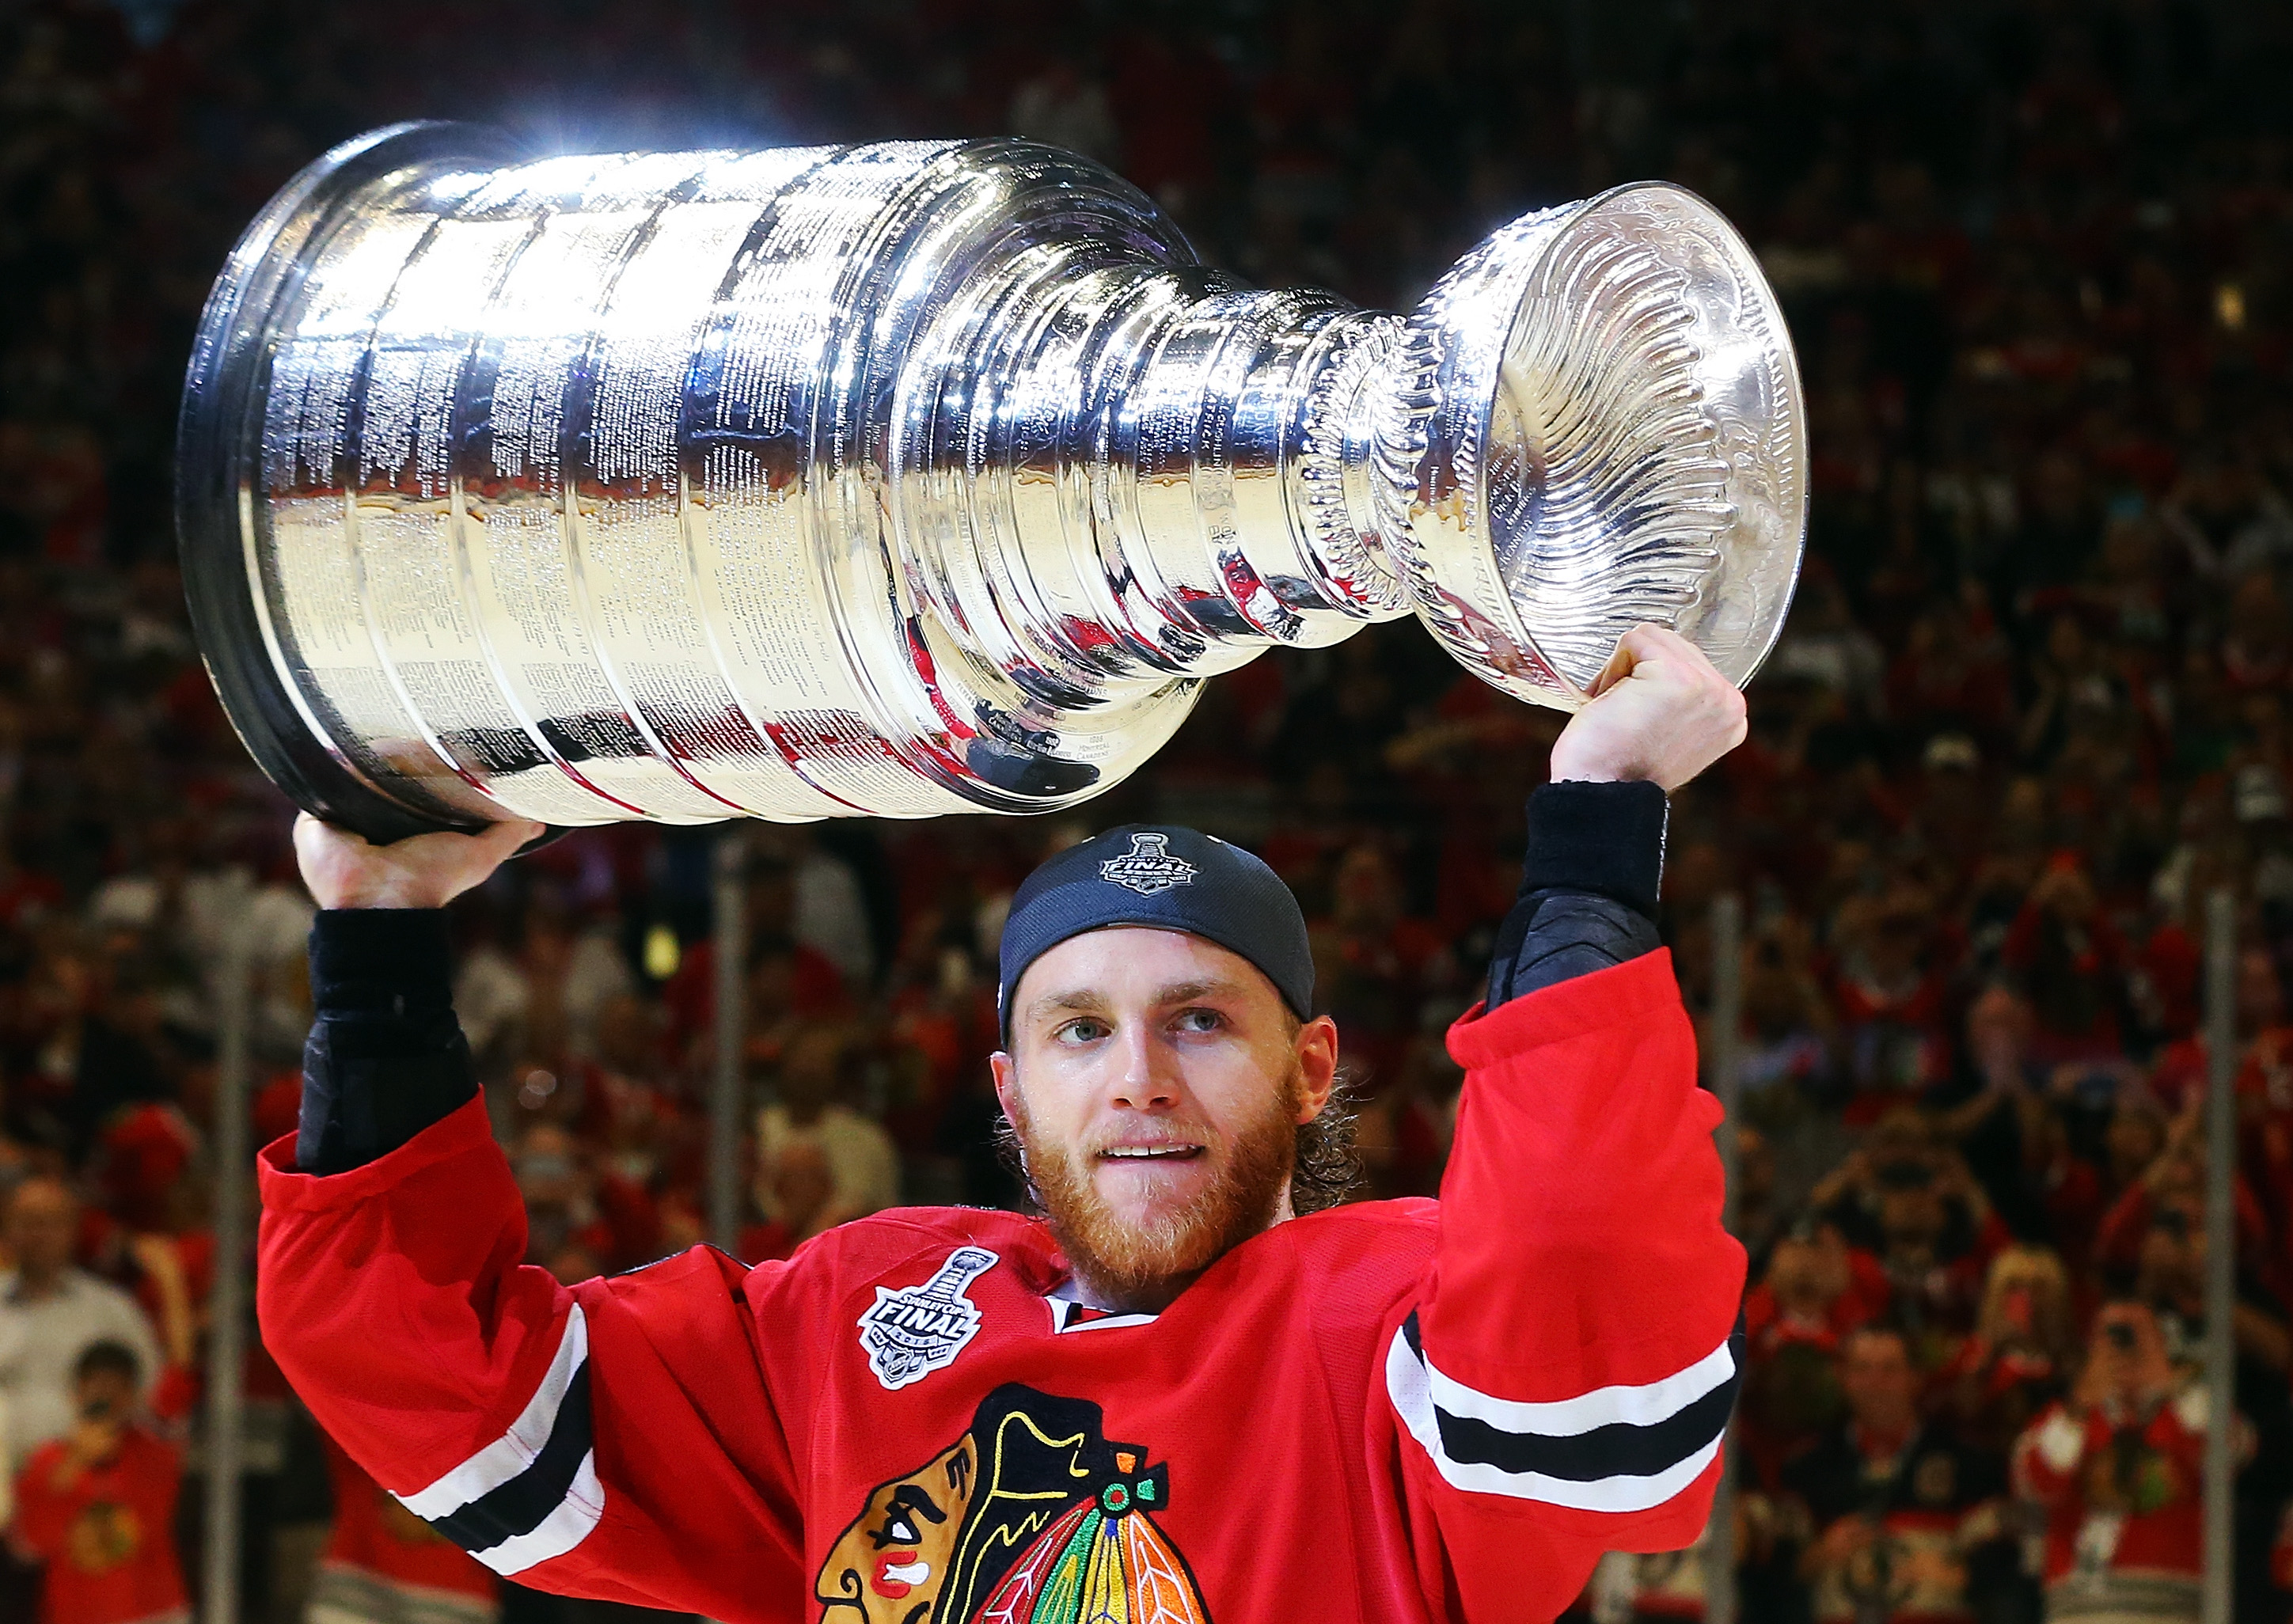 c4ee83a71 Patrick Kane celebrates by hoisting the Stanley Cup after defeating the  Tampa Bay Lightning